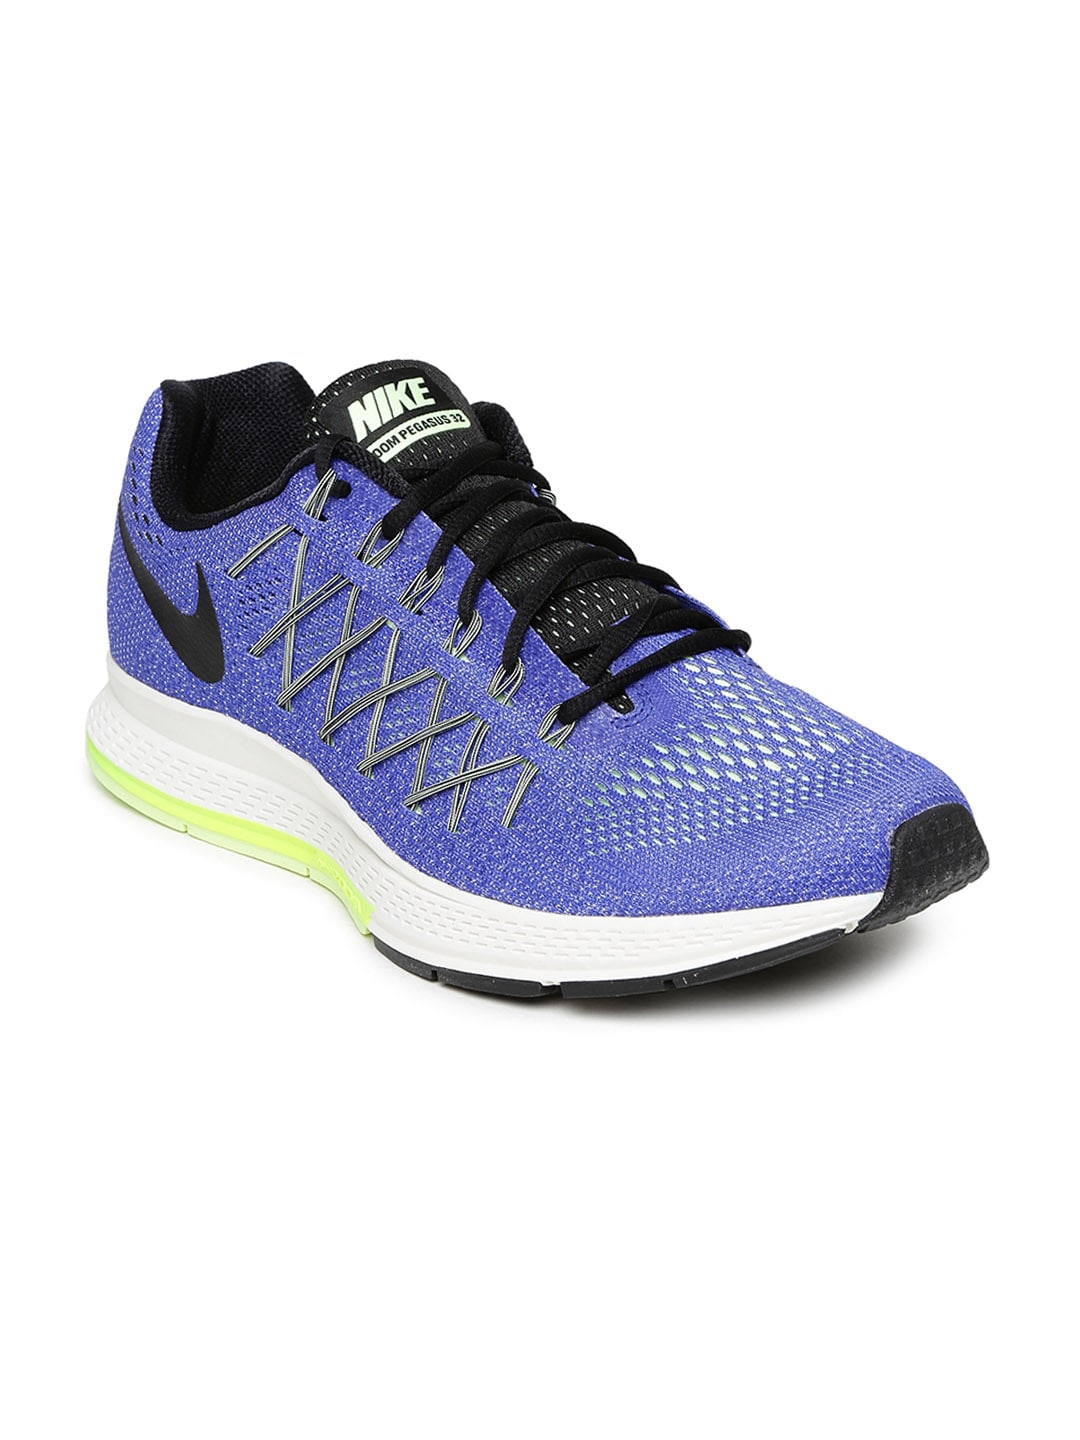 best website dfcf6 2fa66 Nike 749340-407 Men Blue Air Zoom Pegasus 32 Running ...